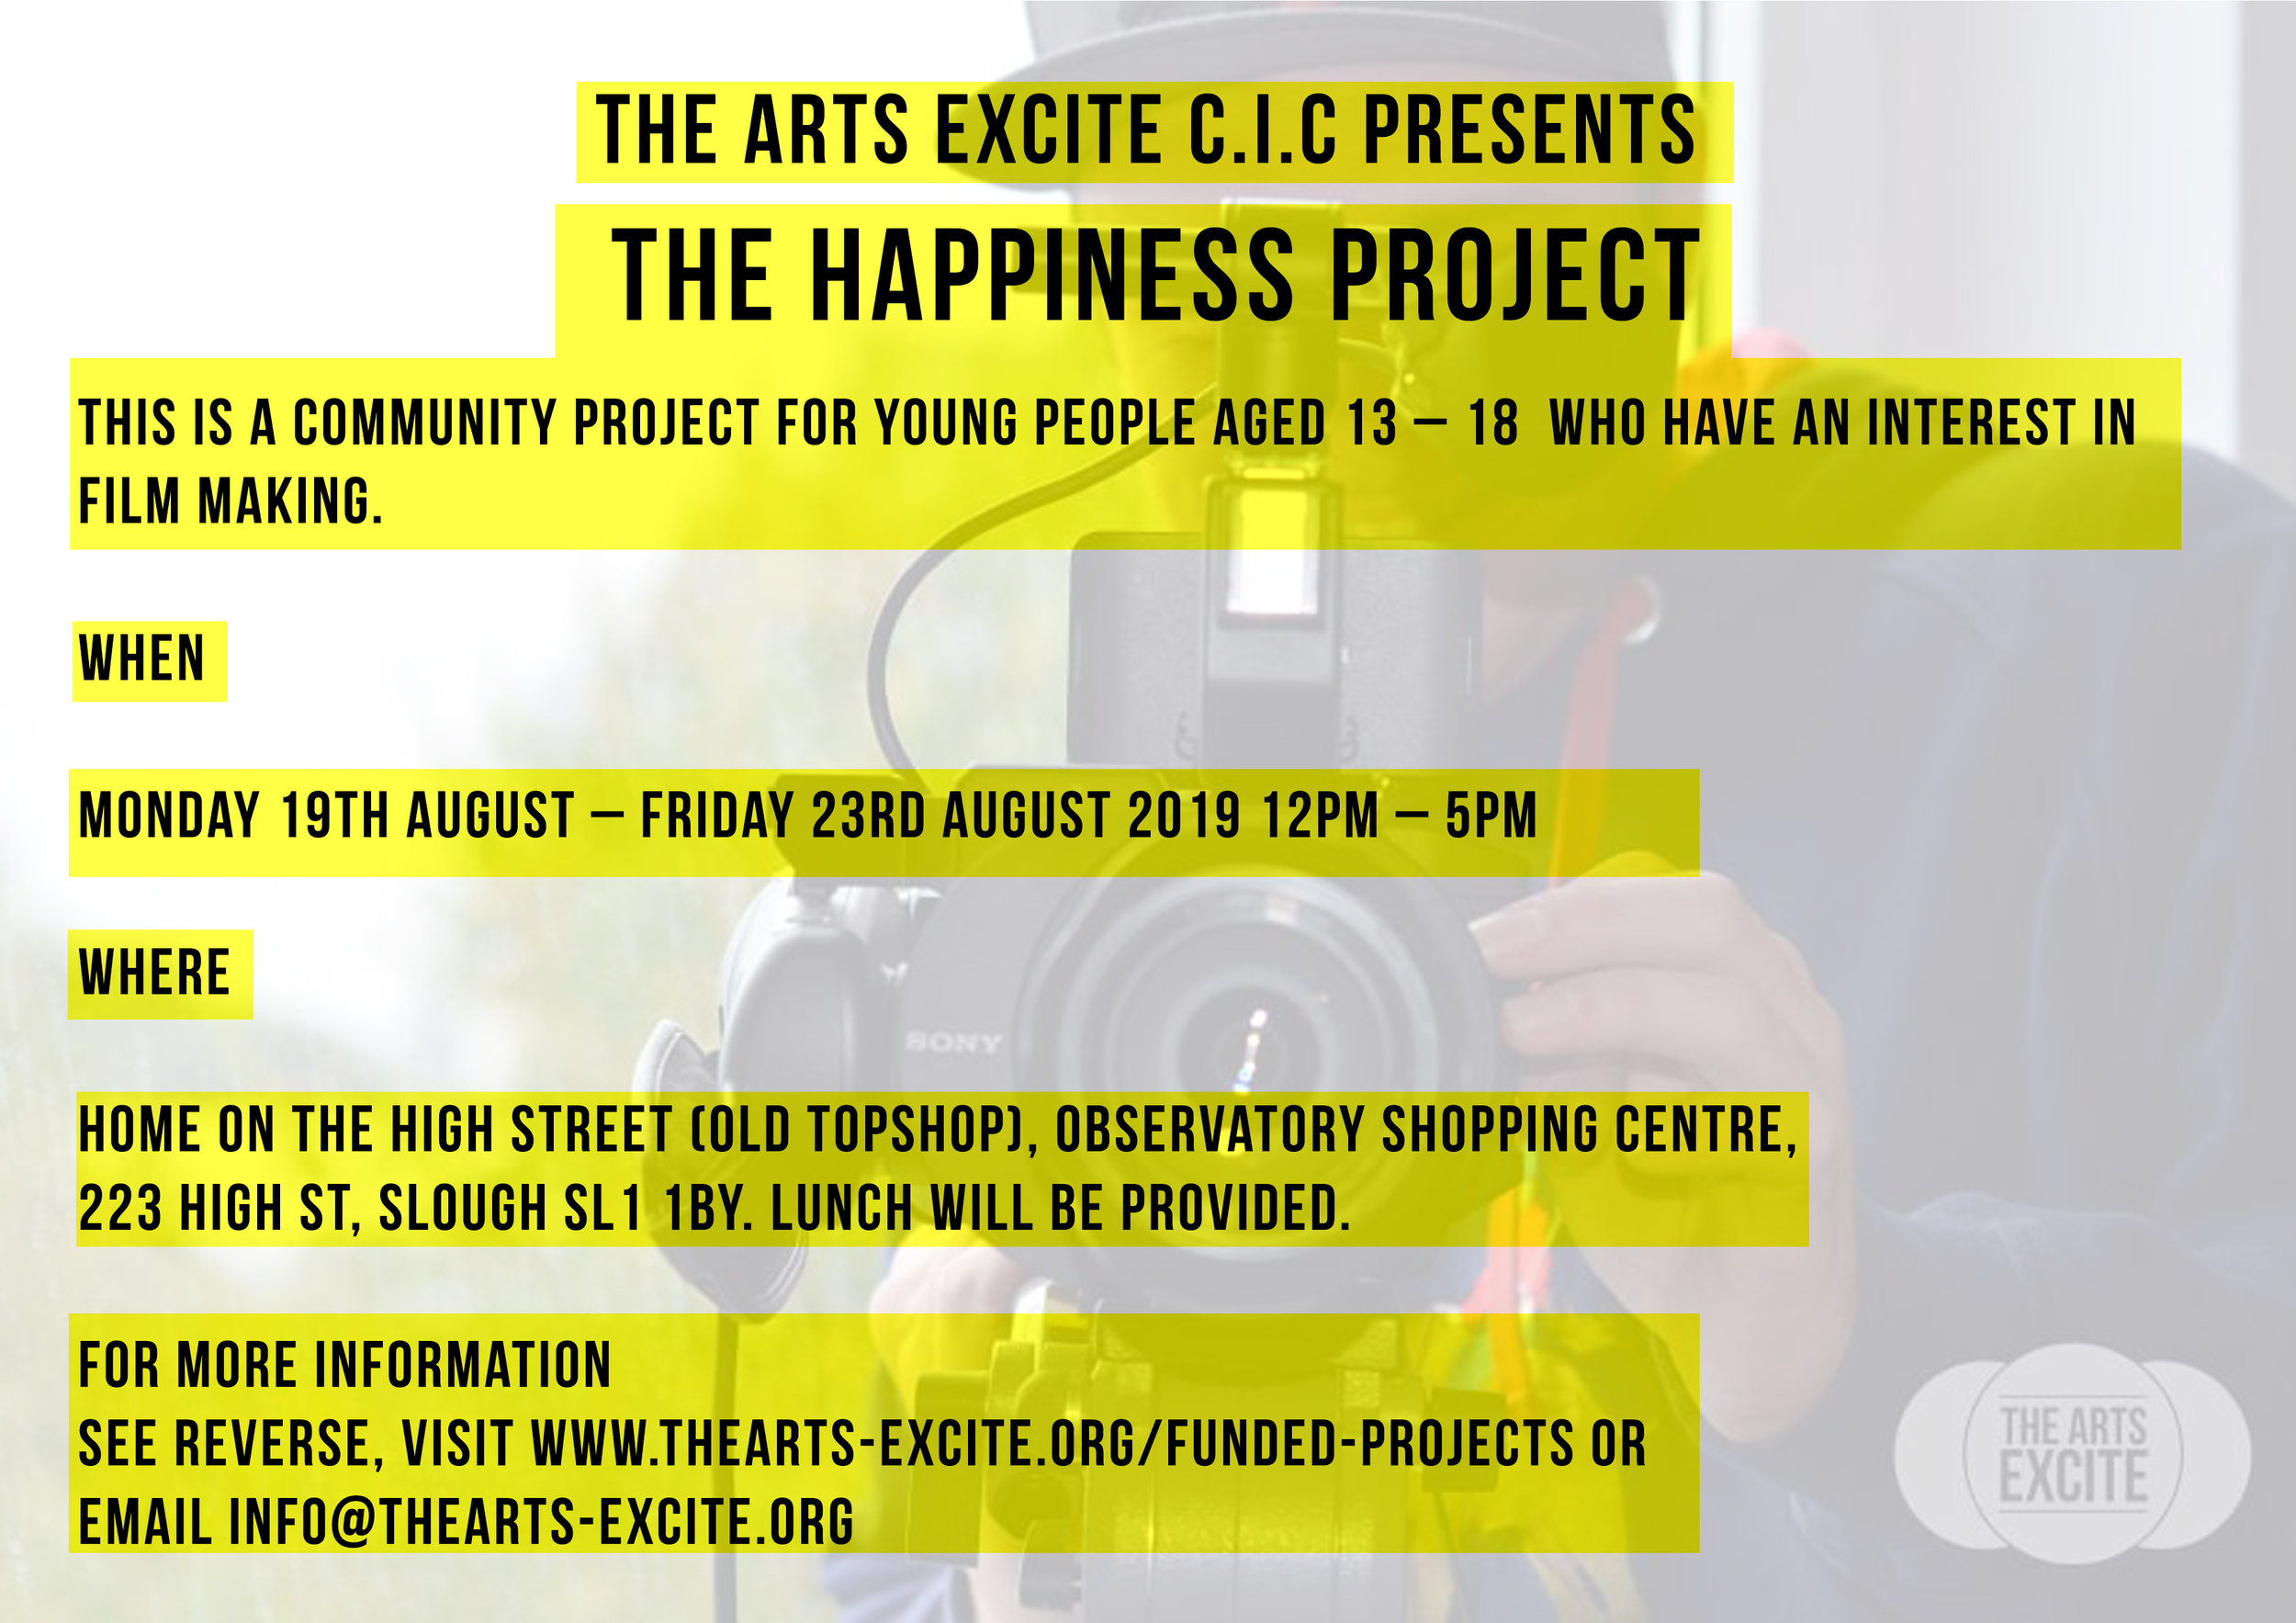 The Happiness Project - This is a free community project for young people aged 13-18 who have an interest in film making. To sign up please complete the form below.